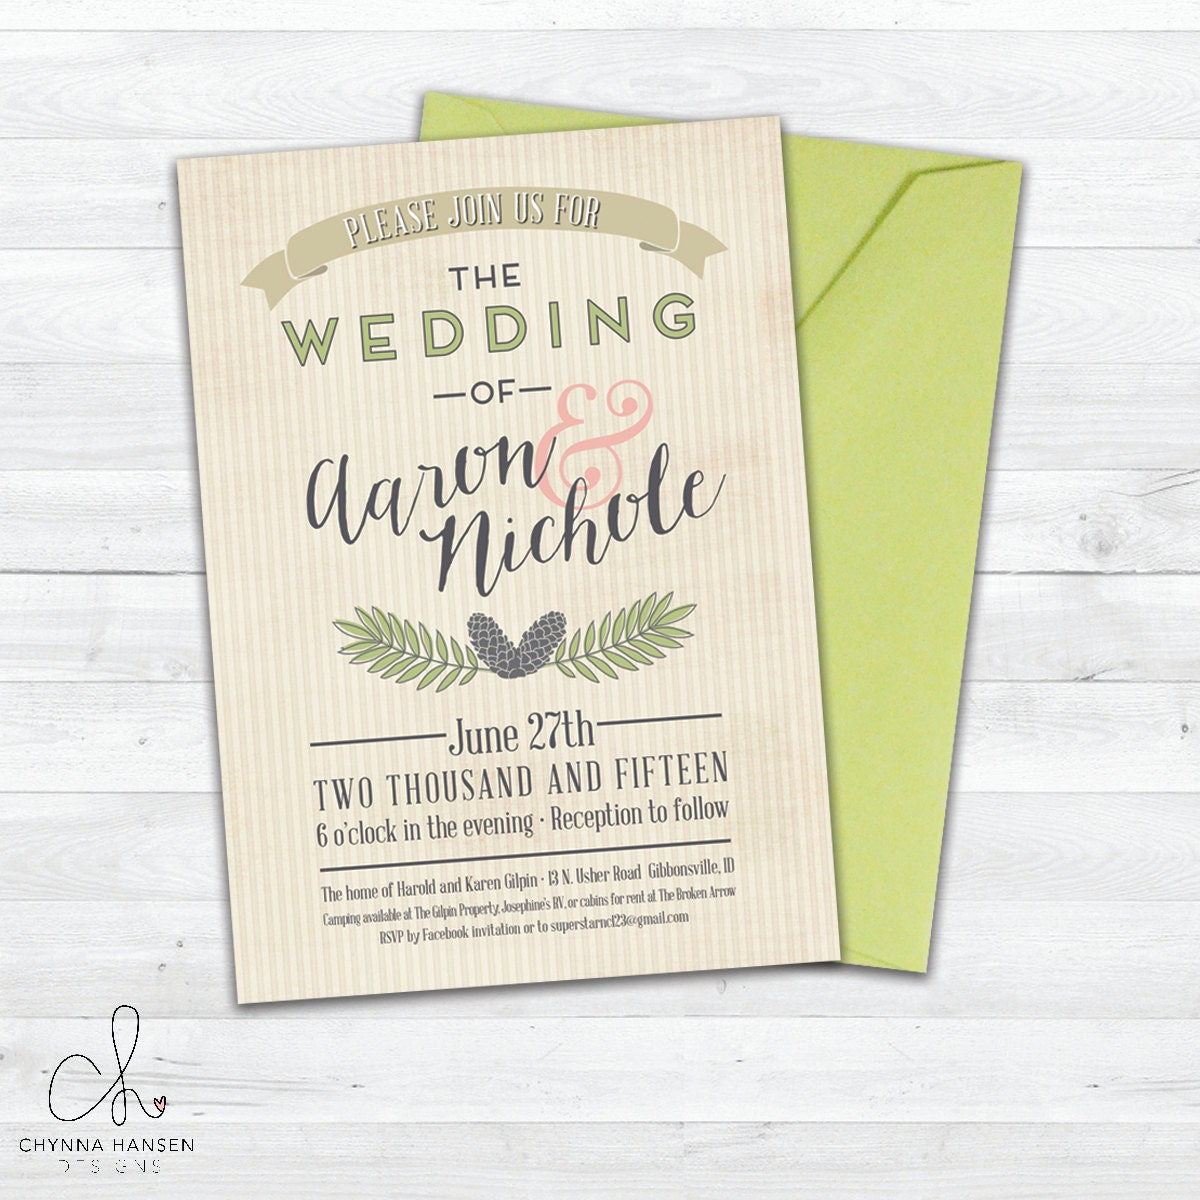 Outdoor Wedding Invitation Wording: Rustic Wedding Invitation Outdoor Wedding Country Wedding